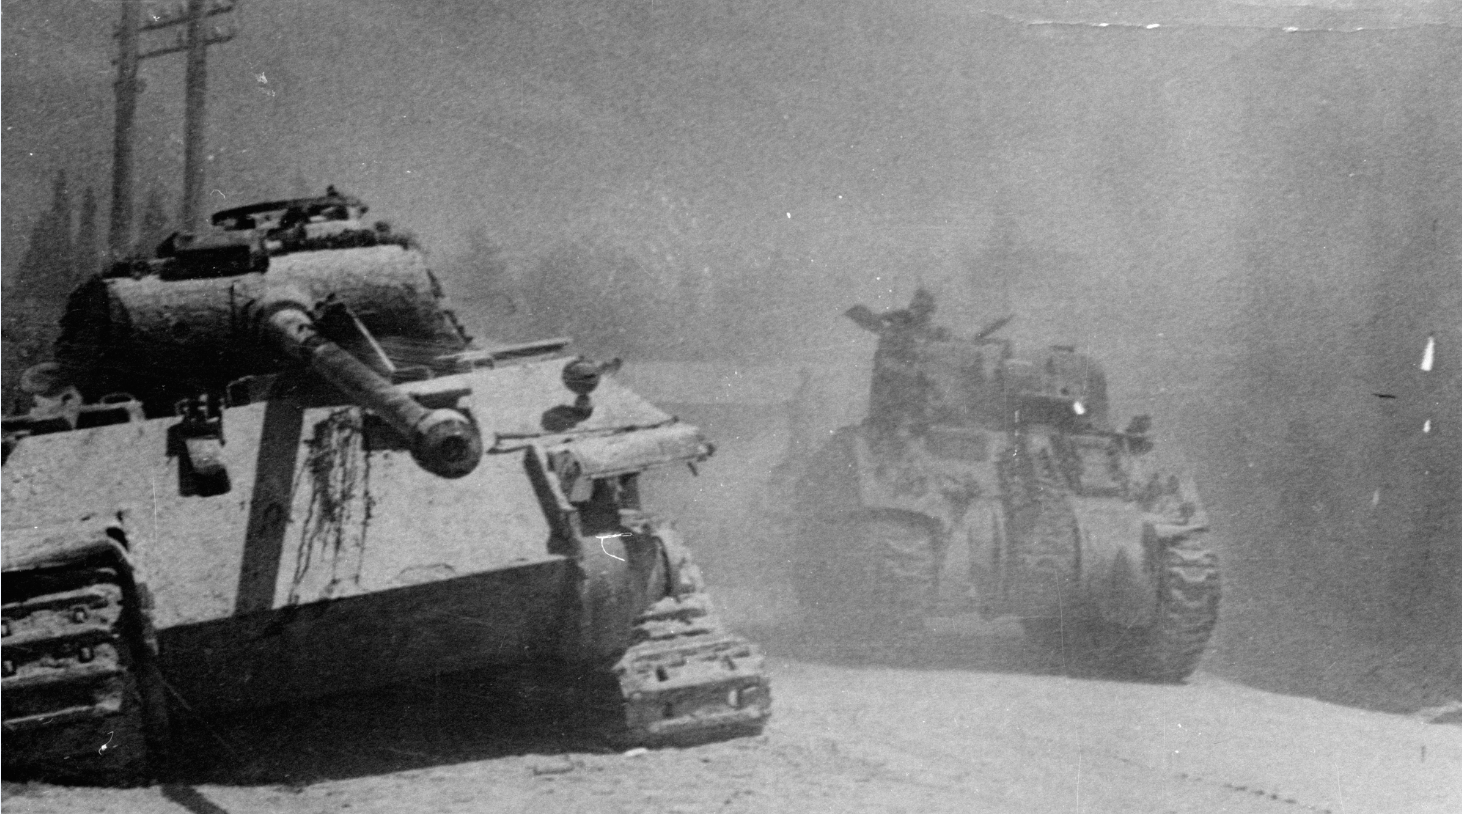 An allied Sherman Tank passing a knocked out German Panther tank during the advance on Arezzo, Italy in July 1944. Sherman tanks are among the relics Russia's Northern Fleet are raising from a sunken WW2 American ship.  (Keystone/Getty Images)